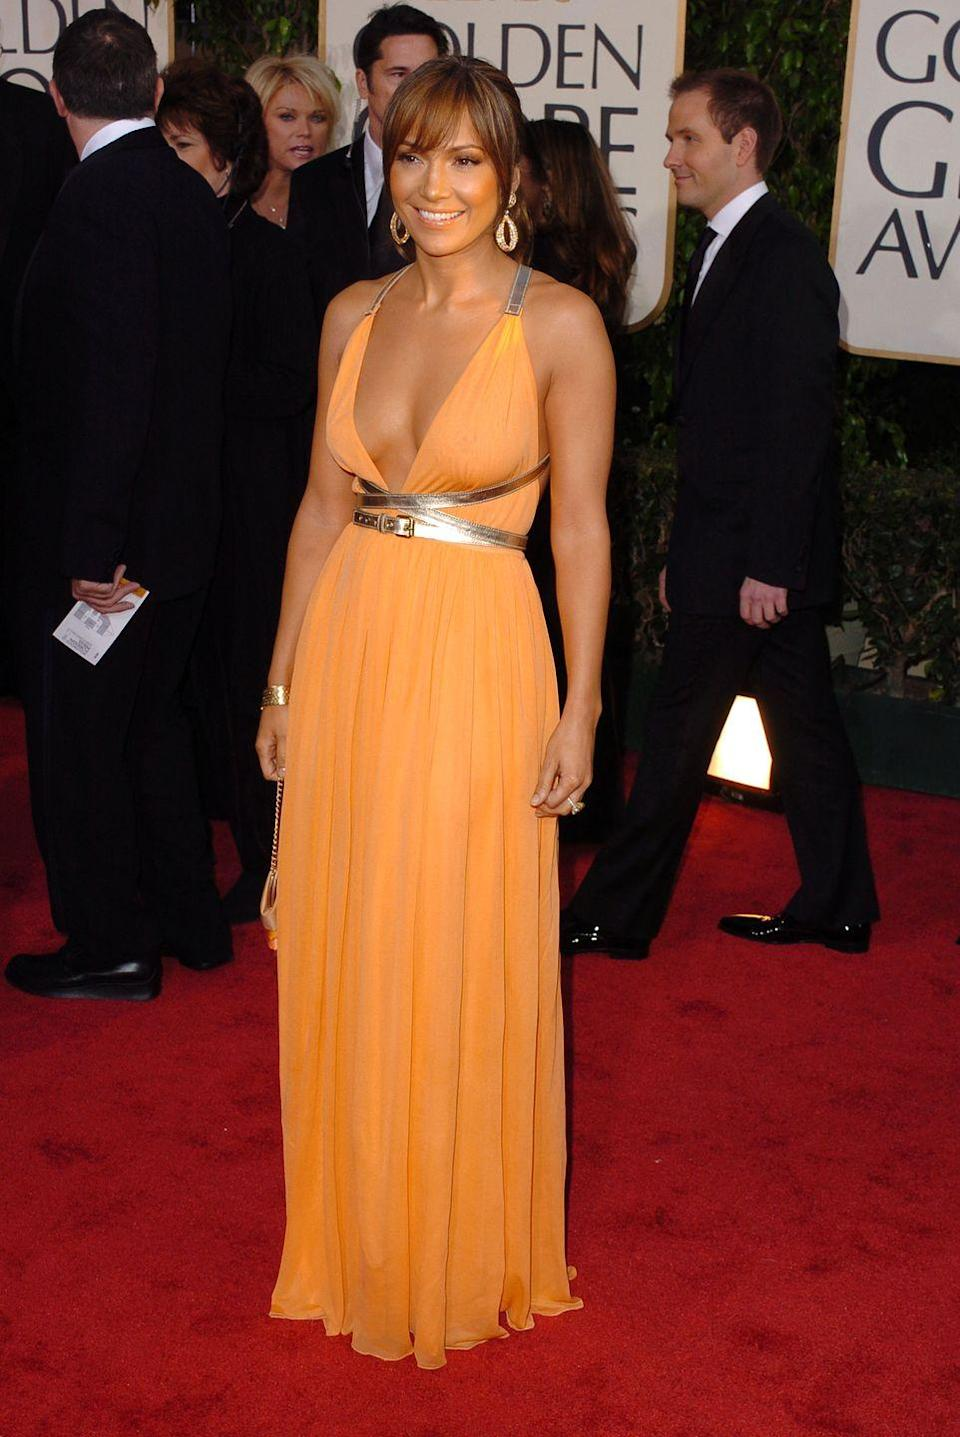 <p><strong>When: </strong>January 2004</p><p><strong>Where: </strong>The Golden Globes</p><p><strong>Wearing: </strong>Michael Kors</p>